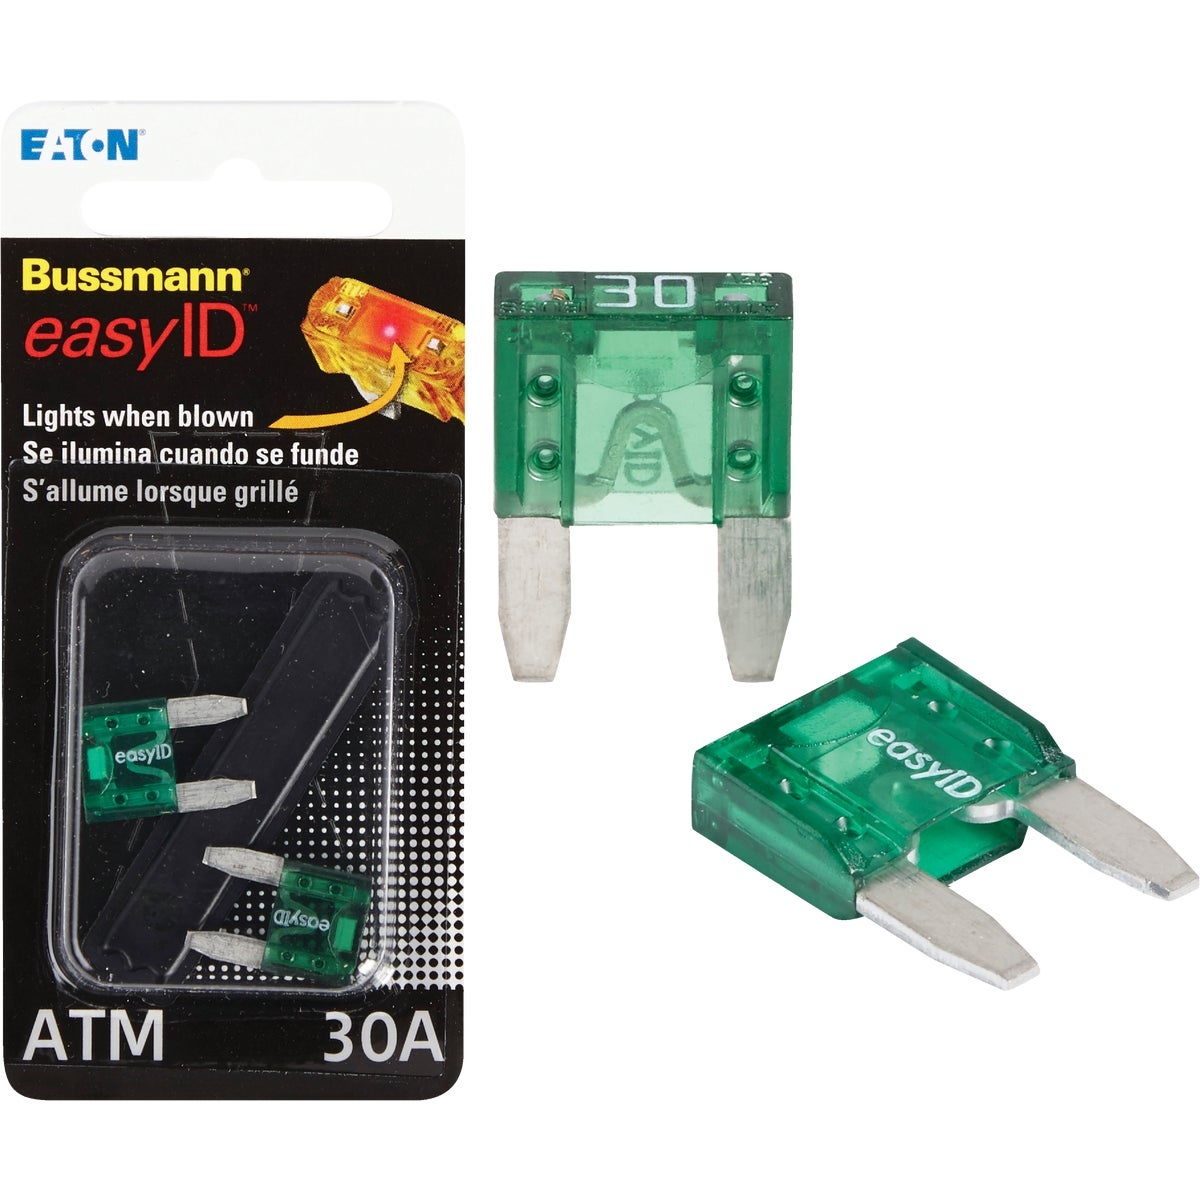 2PK 30A ATM EASY ID FUSE